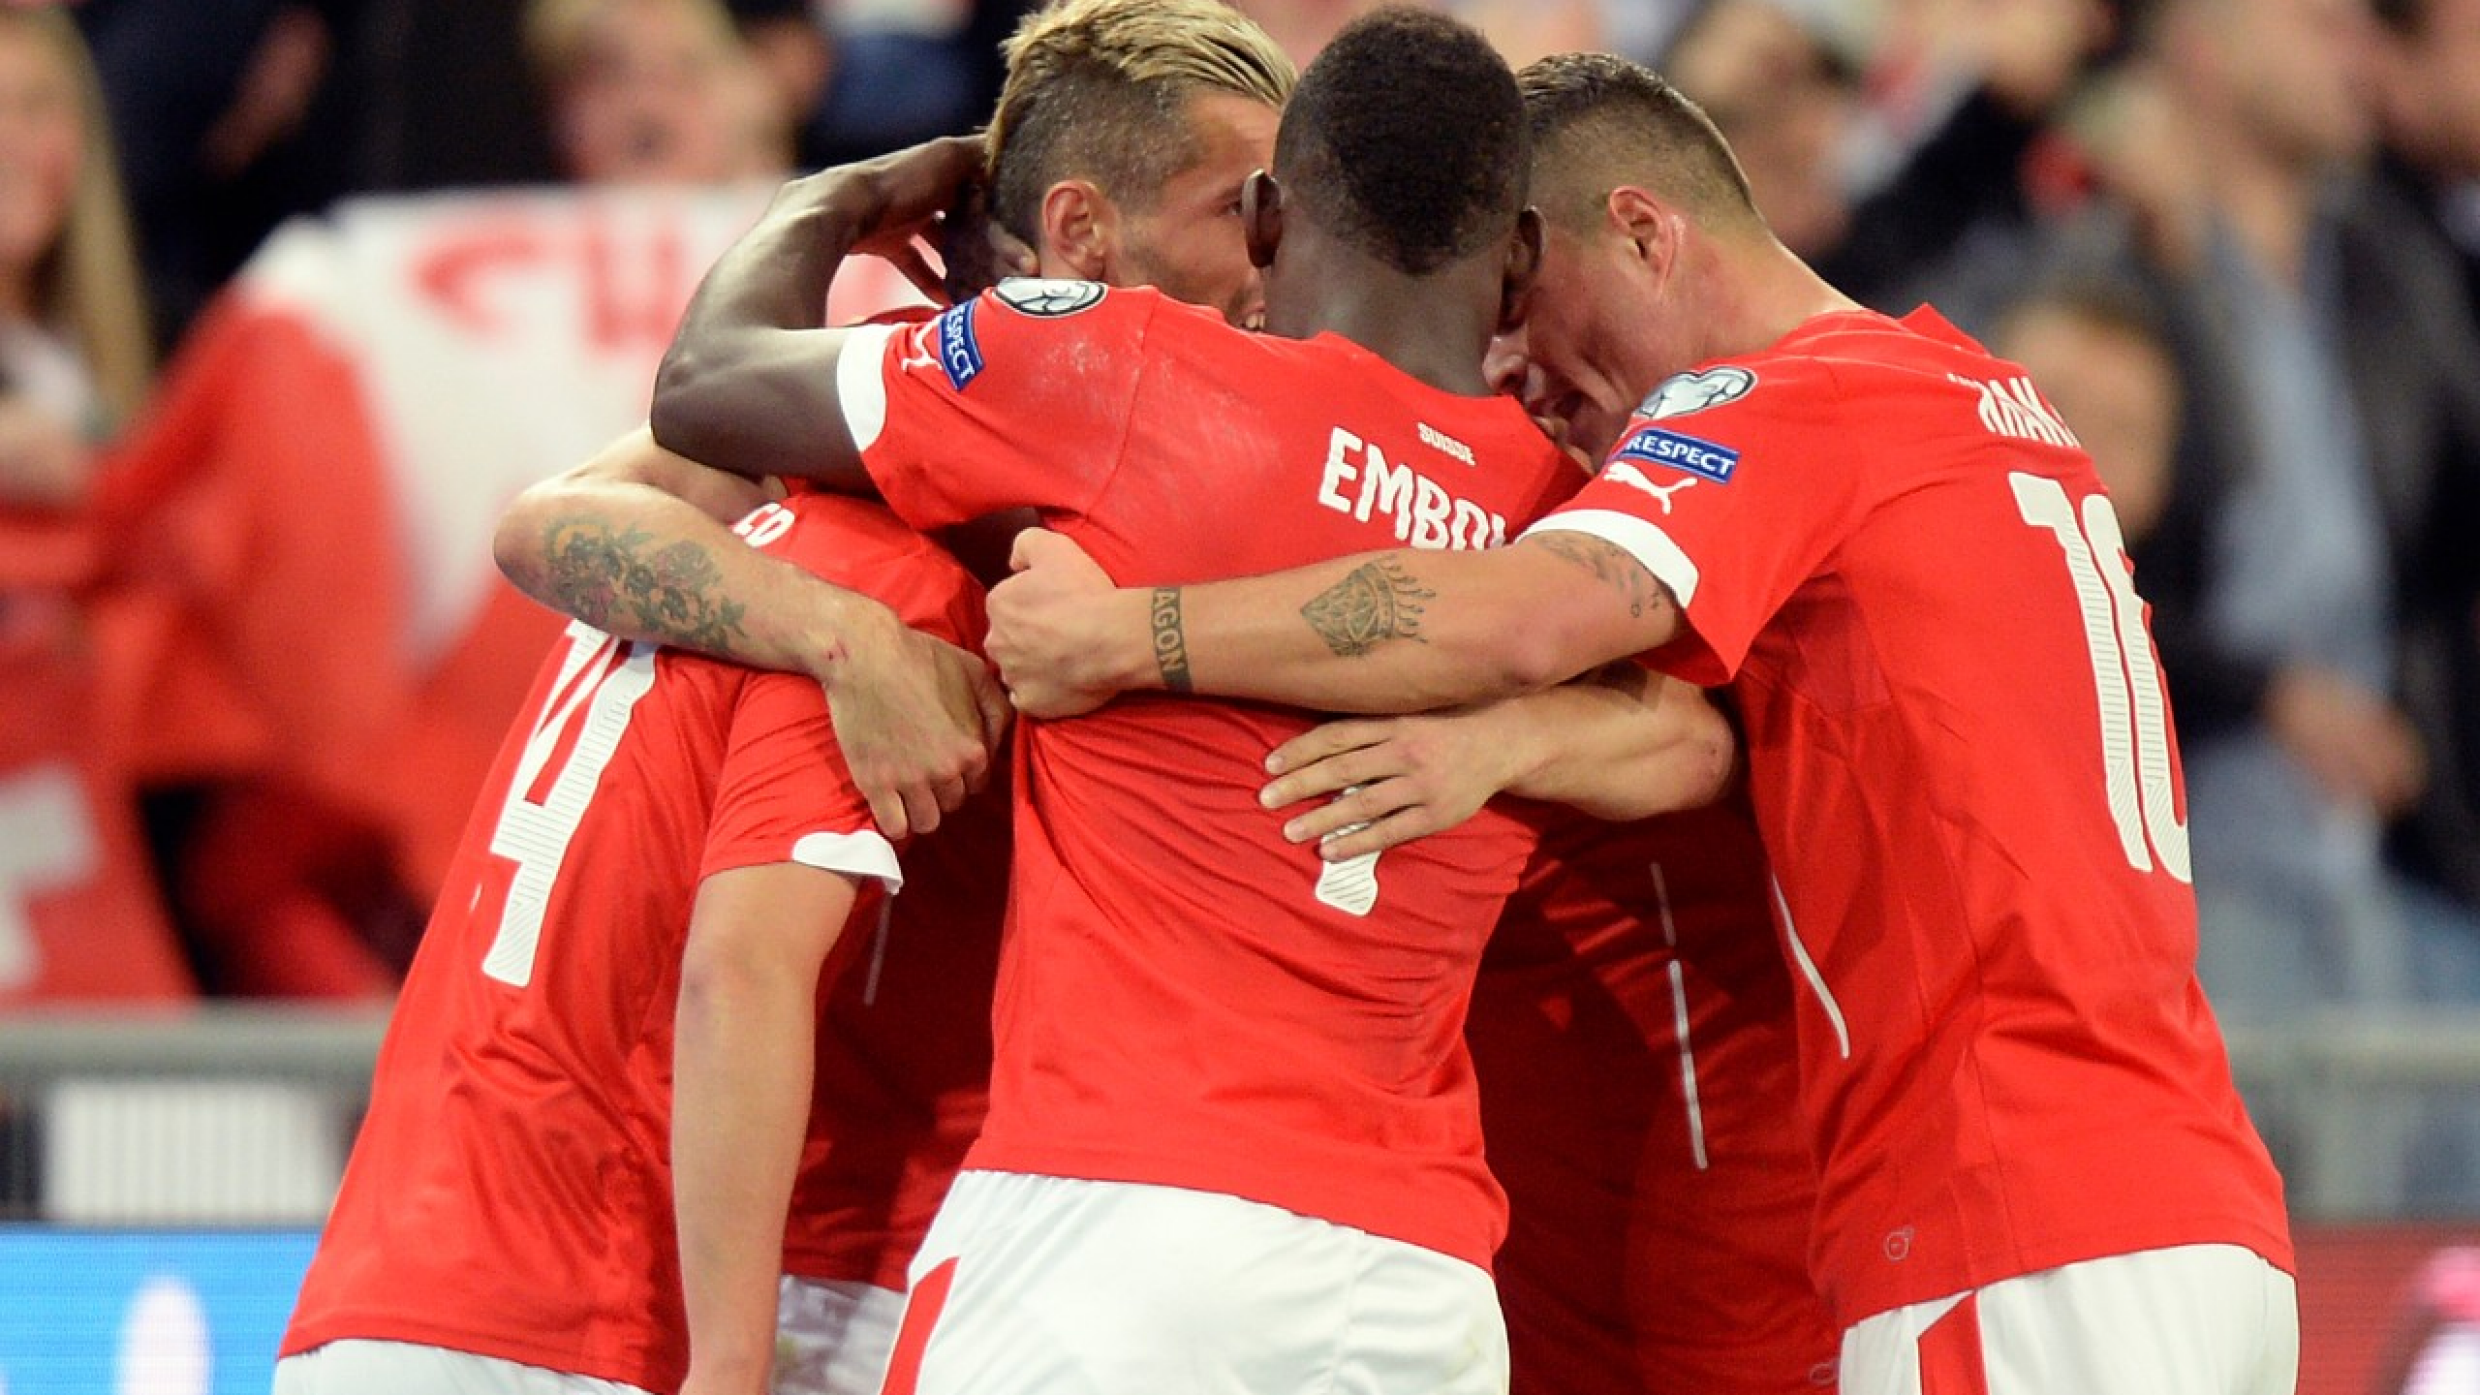 Swiss players celebrates after the first goal for Switzerland during the UEFA EURO 2016 qualifying soccer match Switzerland against Slovenia at the St. Jakob-Park stadium in Basel, Switzerland, Saturday, September 5, 2015. (KEYSTONE/Walter Bieri)